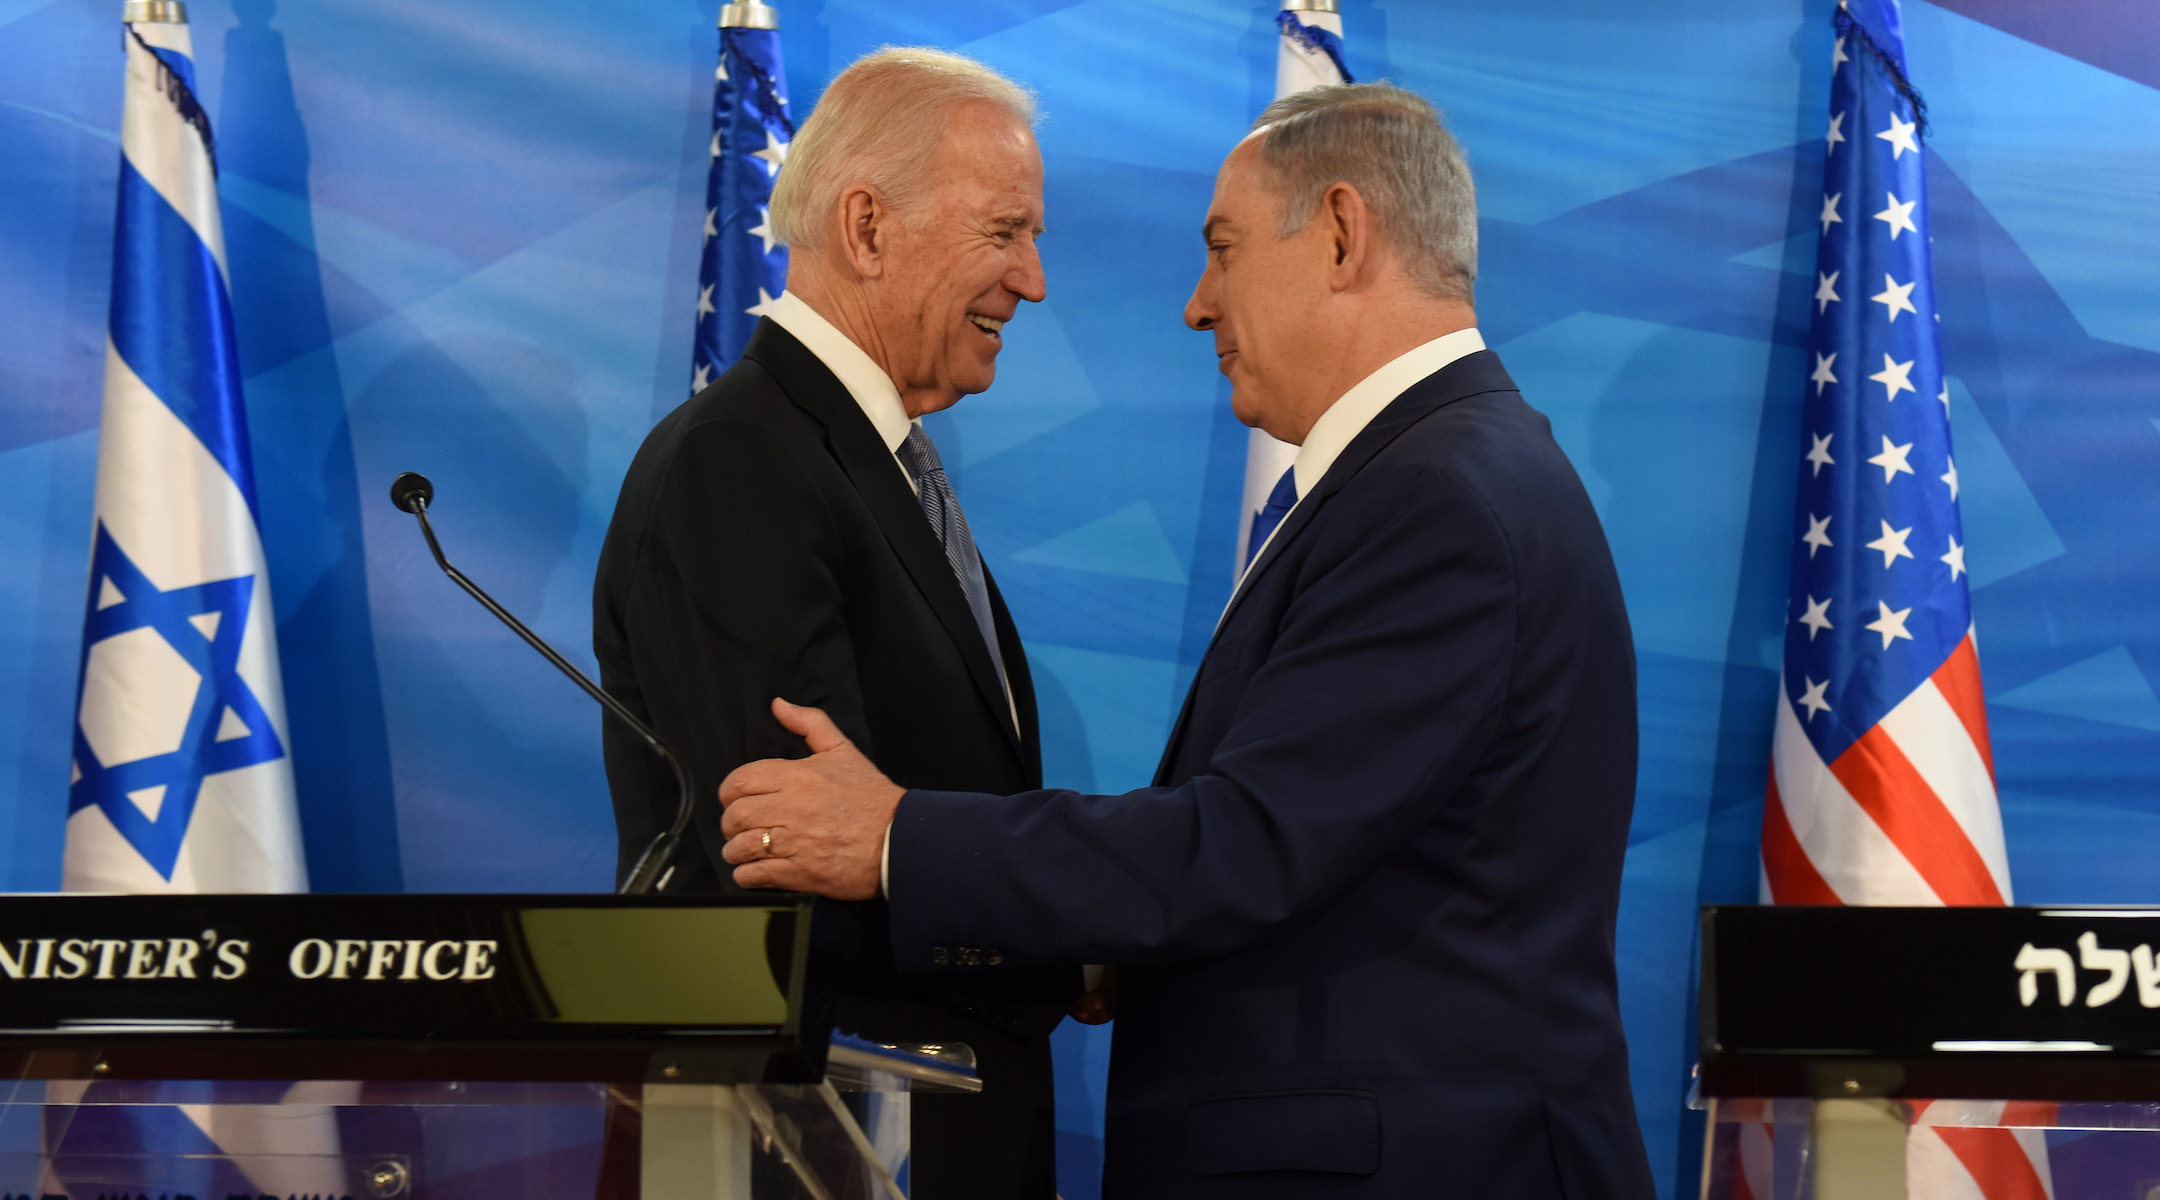 Biden intervened to keep 'occupation' out of Democratic platform